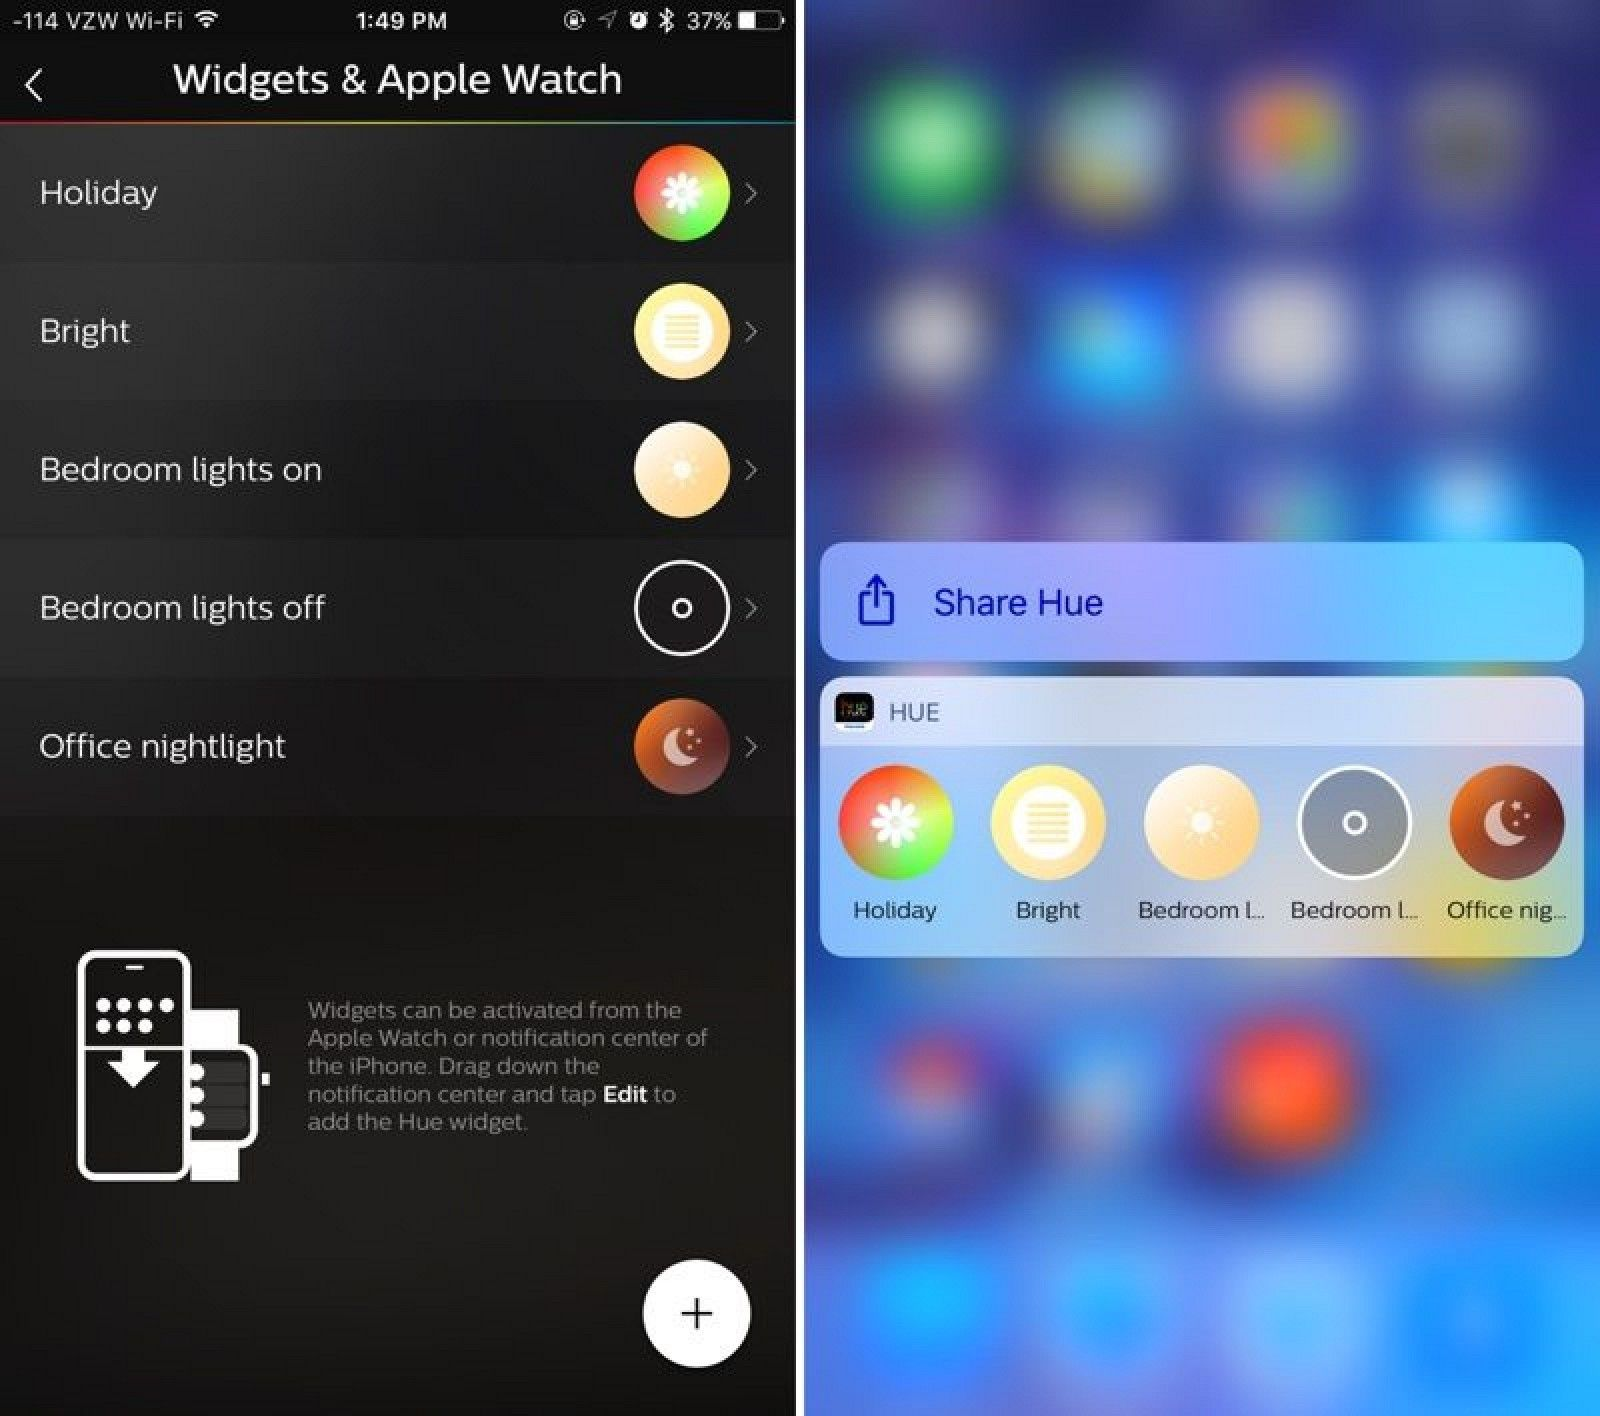 Philips Hue App Expands to iPad, Gains New 3D Touch